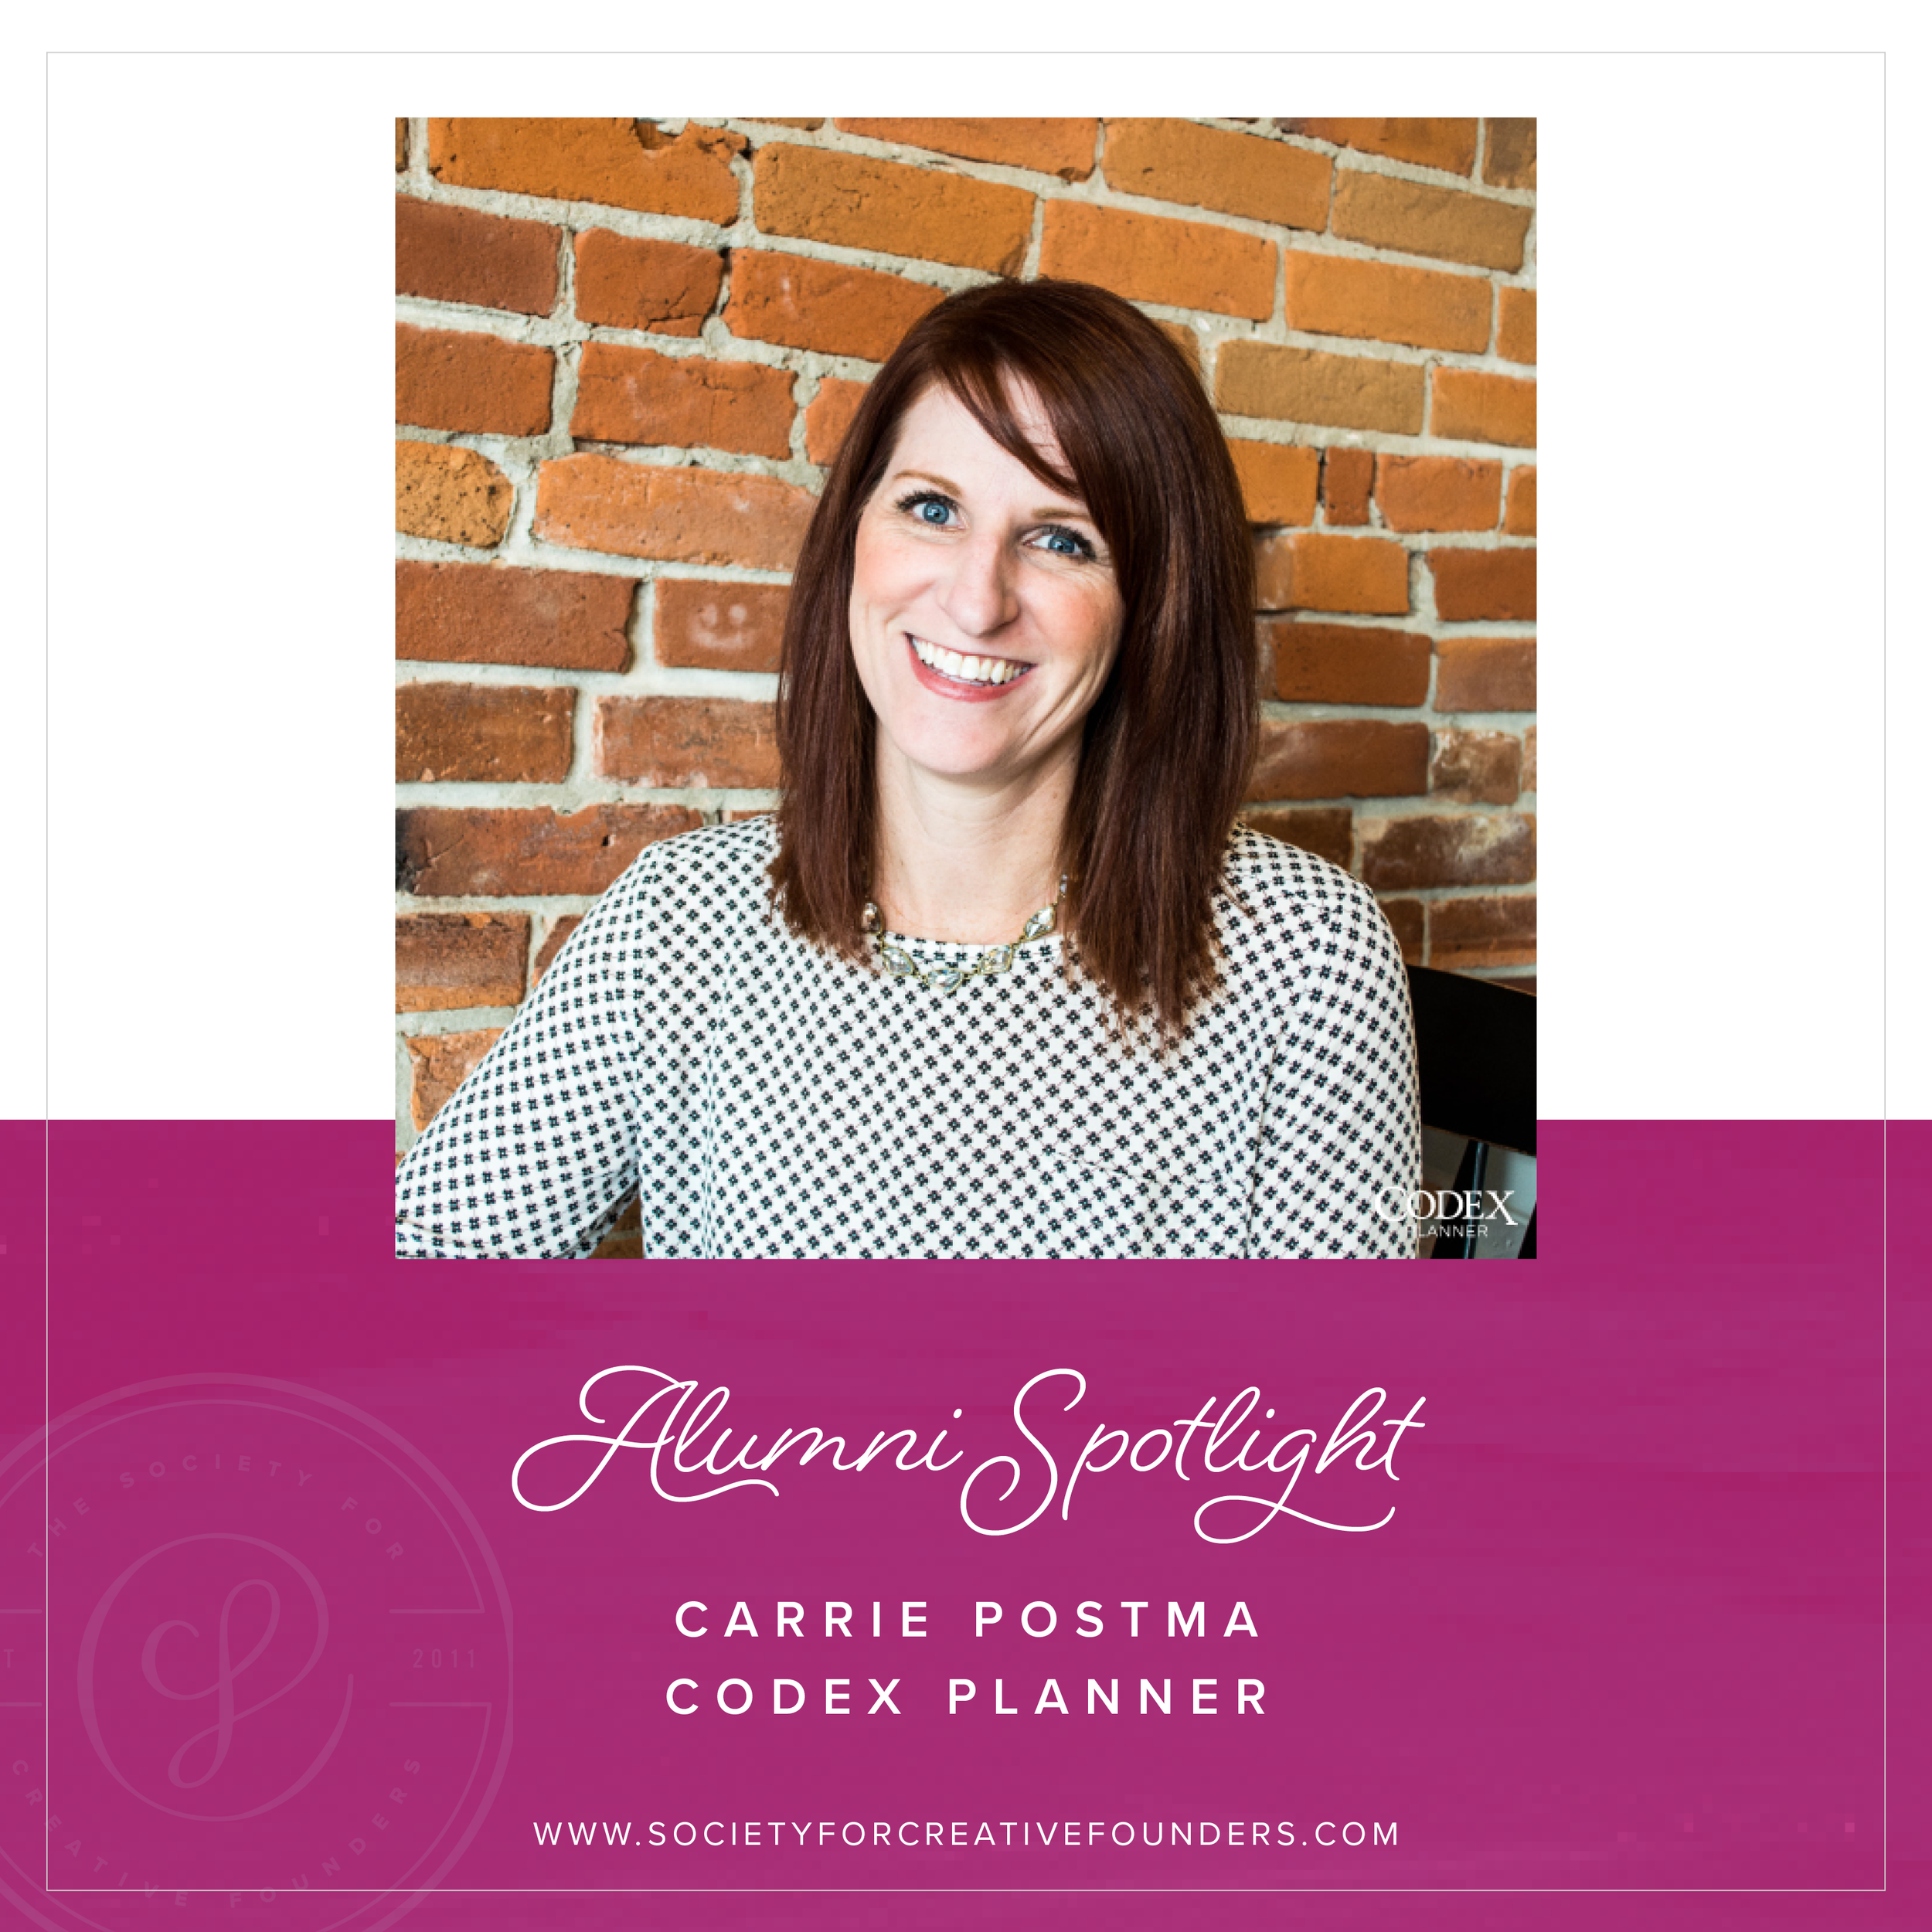 Carrie Postma, founder of the Codex Planner